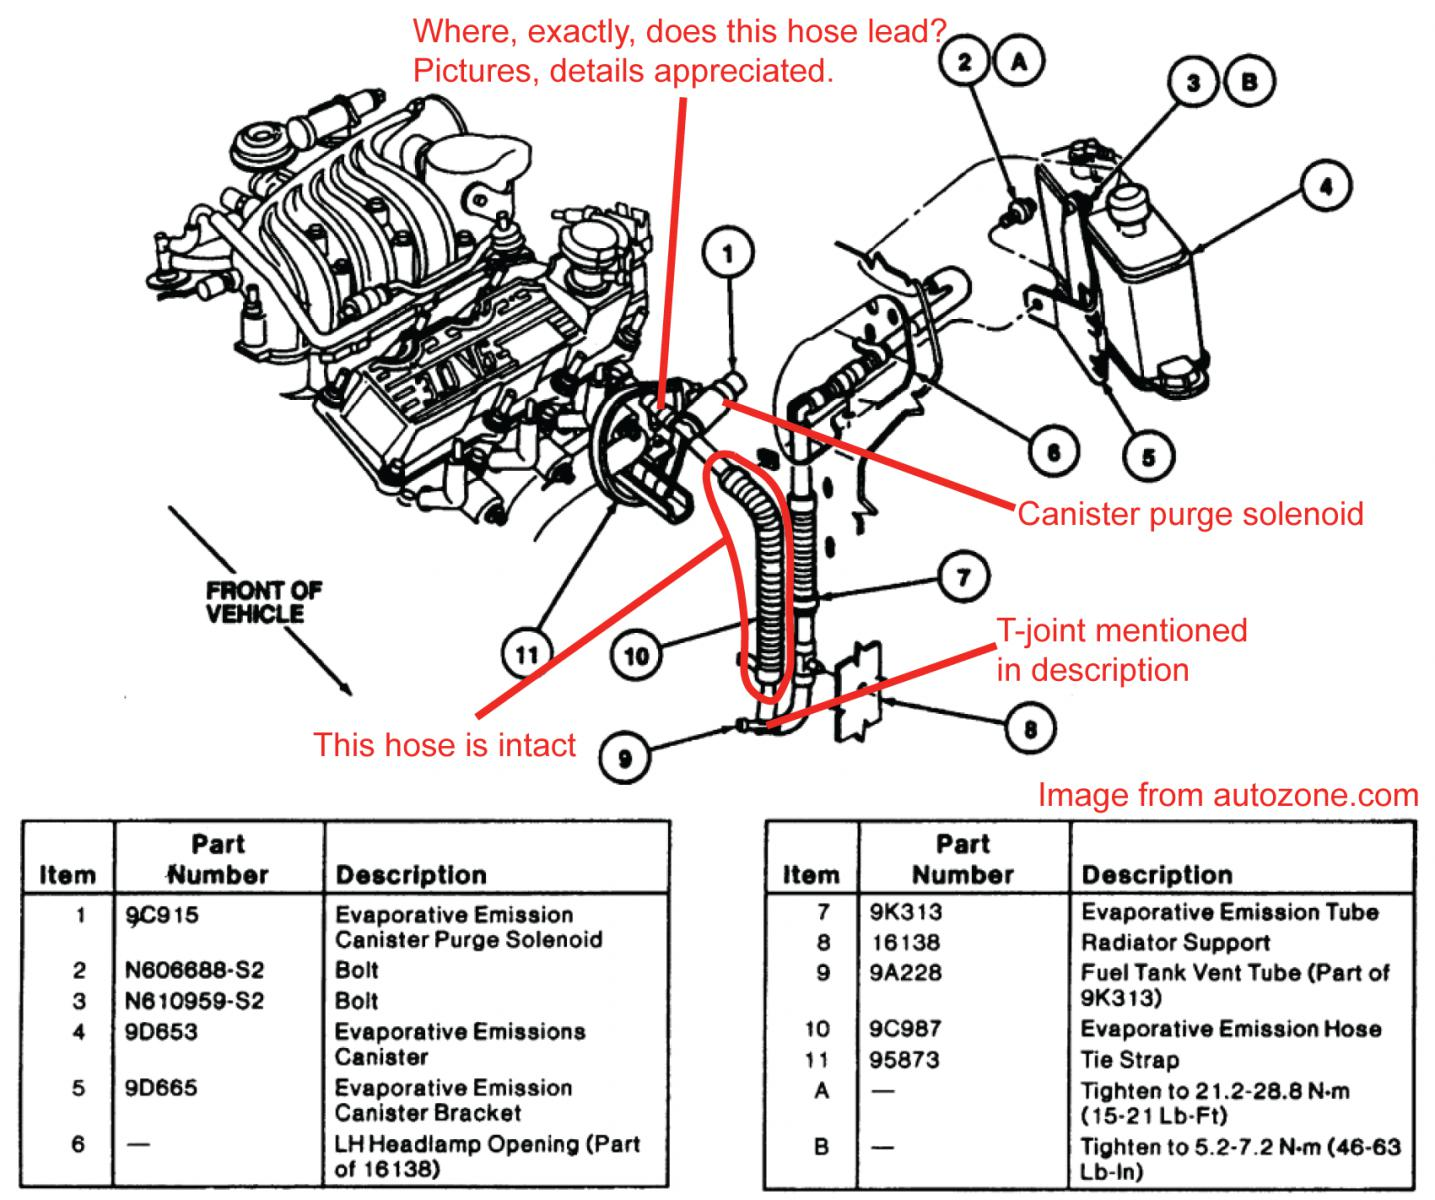 1999 Ranger Engine Diagram Wiring Library Ford Van 1993 Fuel System Switch U2022 Rh 140 82 24 126 2003